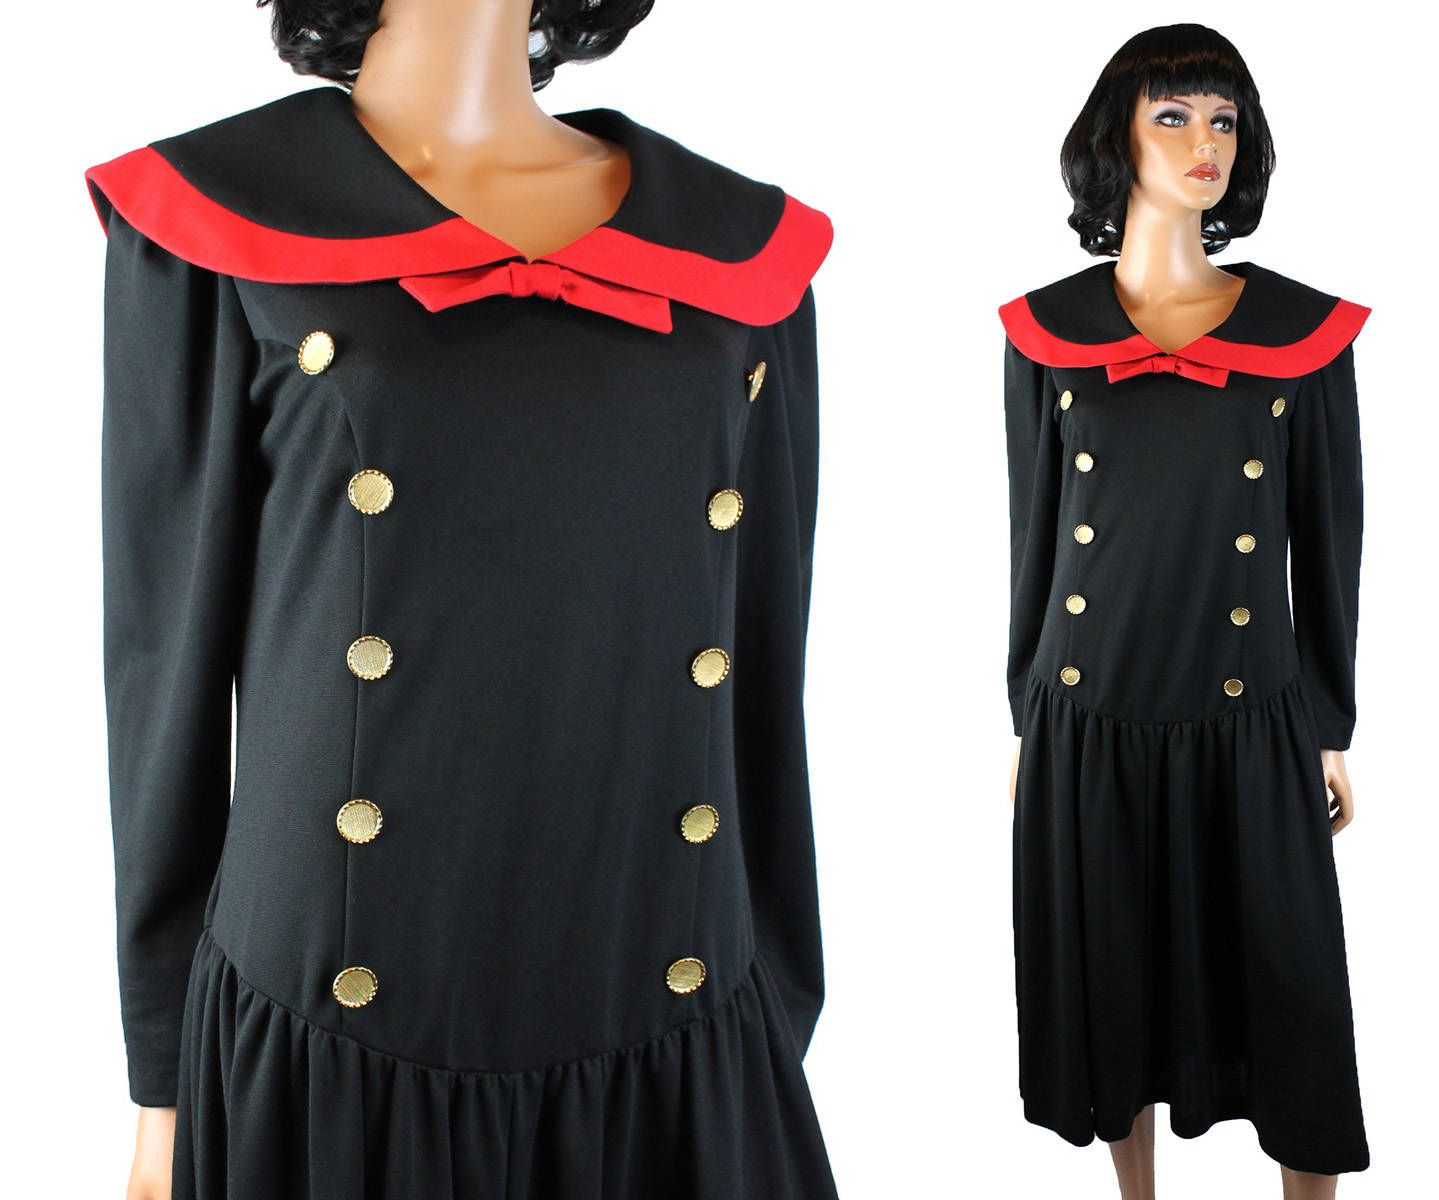 S sailor dress m l p vintage black red long sleeve stretchy poly